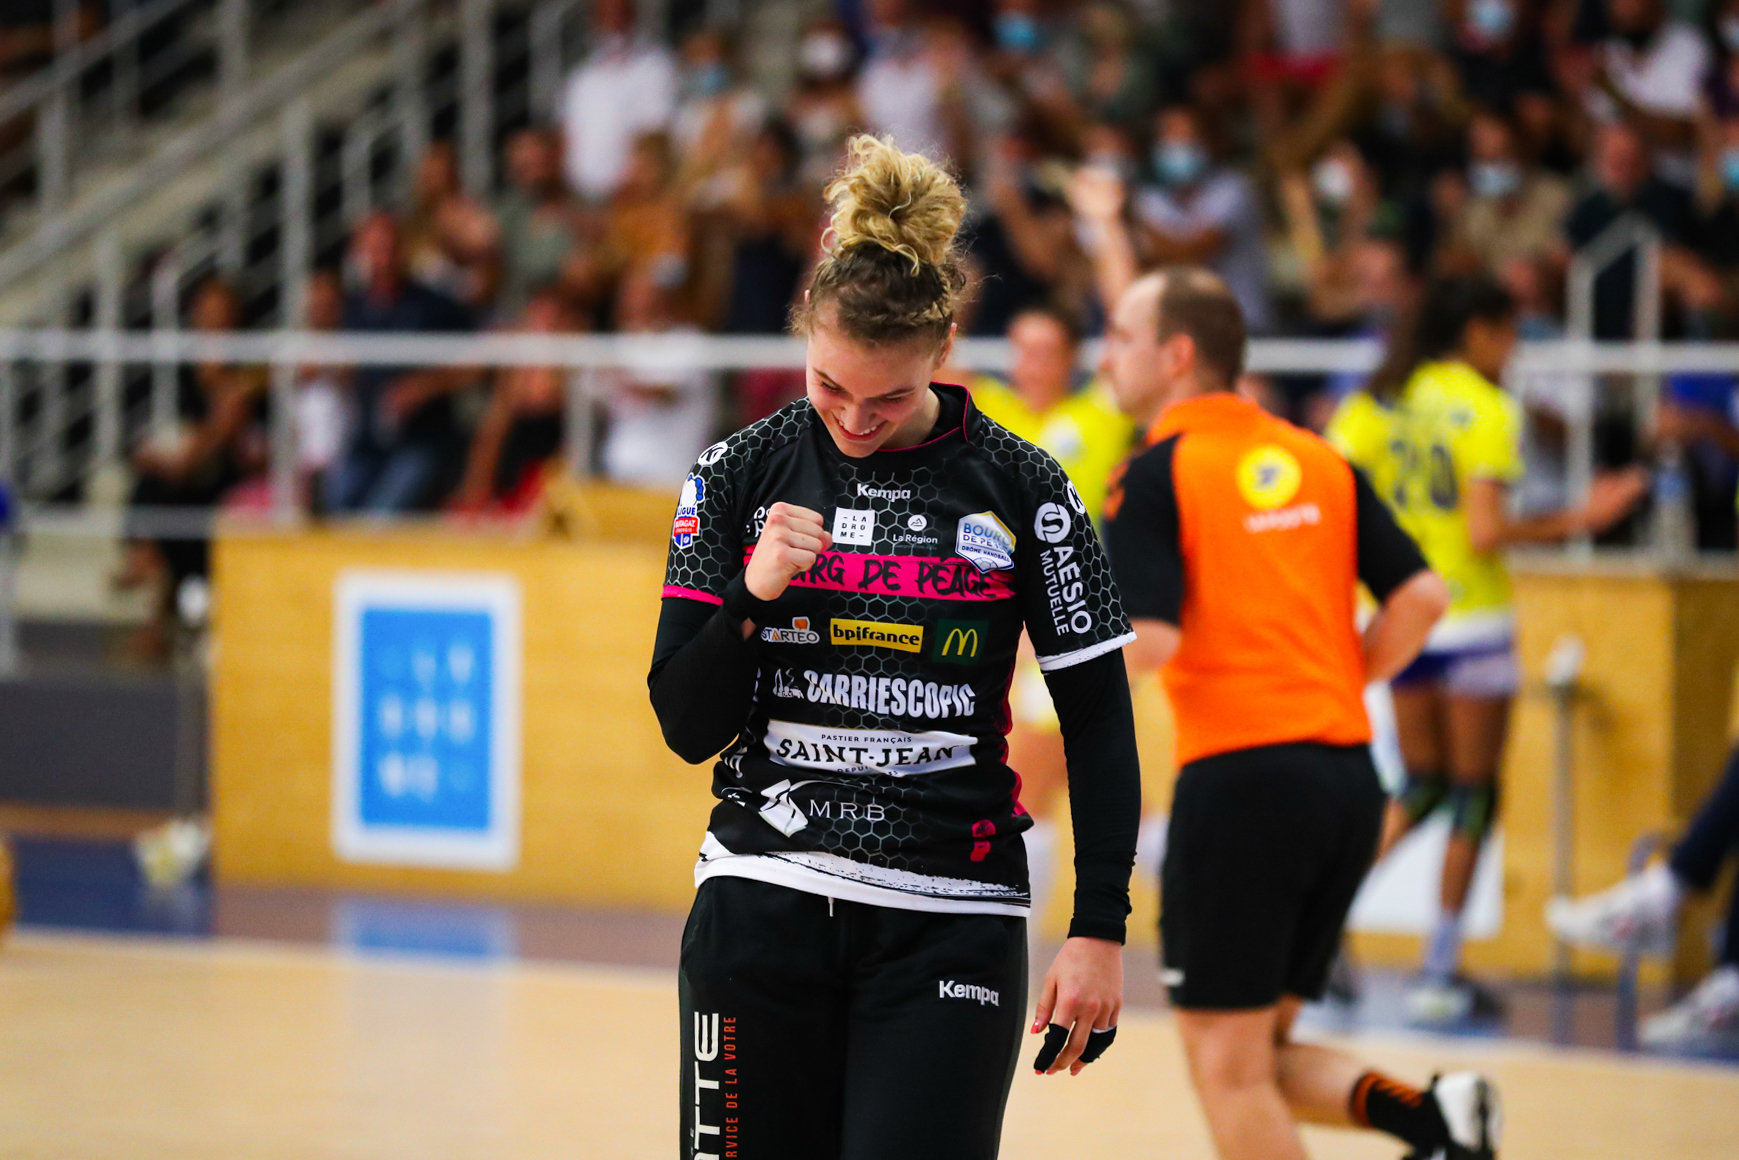 Camille DEPUISET of Brest during the Ligue Butaguaz Energie match between Bourg de Peage and Brest on September 8, 2021 in Bourg-de-Peage, France. (Photo by Bertrand Delhomme/Icon Sport) -  (France)